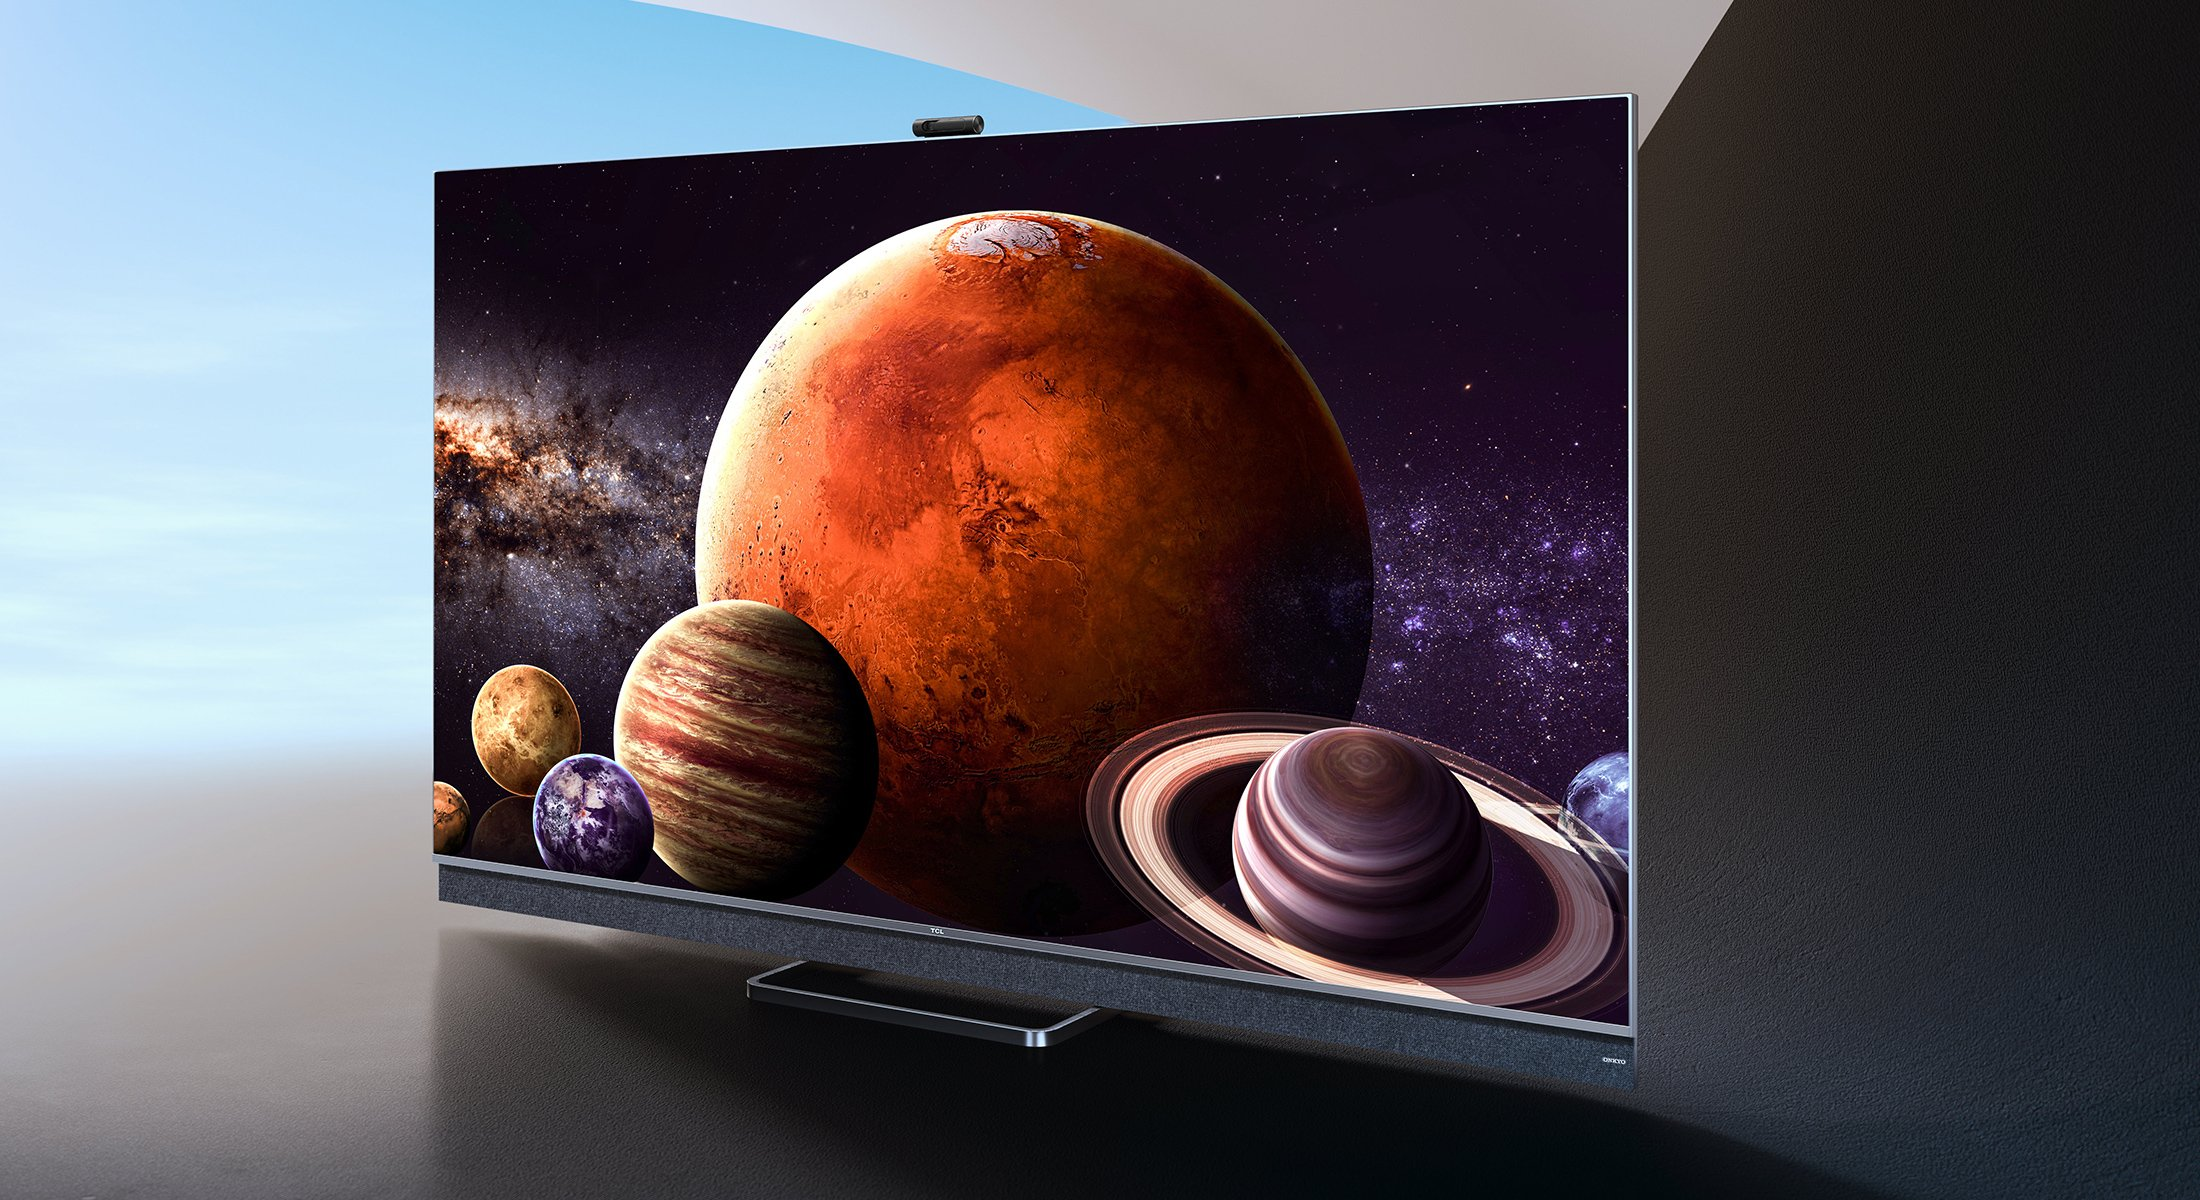 TCL C825 Mini-LED Smart TV Now Available in Pakistan With 4K Resolution, Gestures, and More